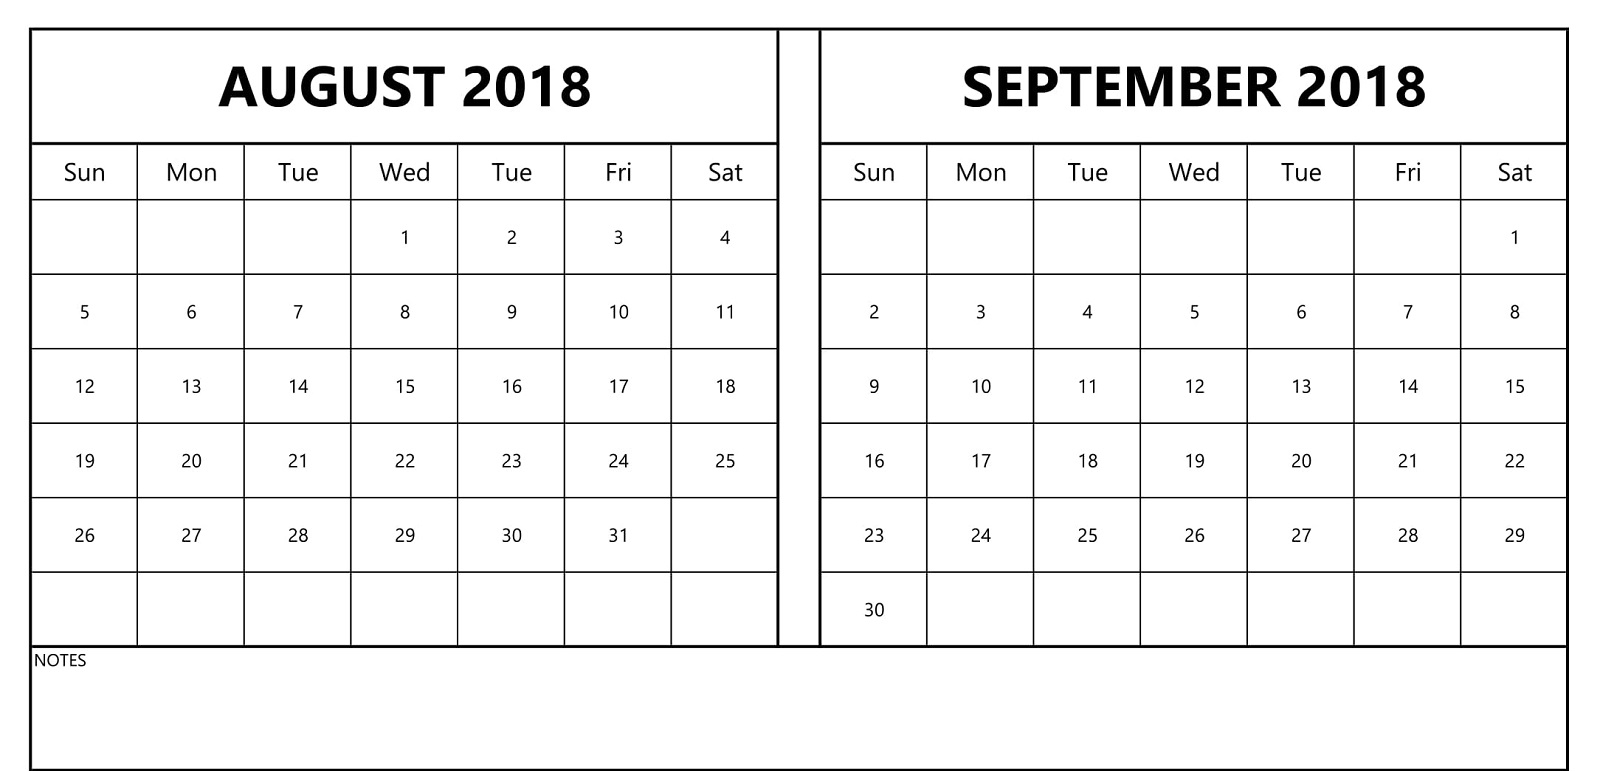 September 2018 Calendars With Space For Notes